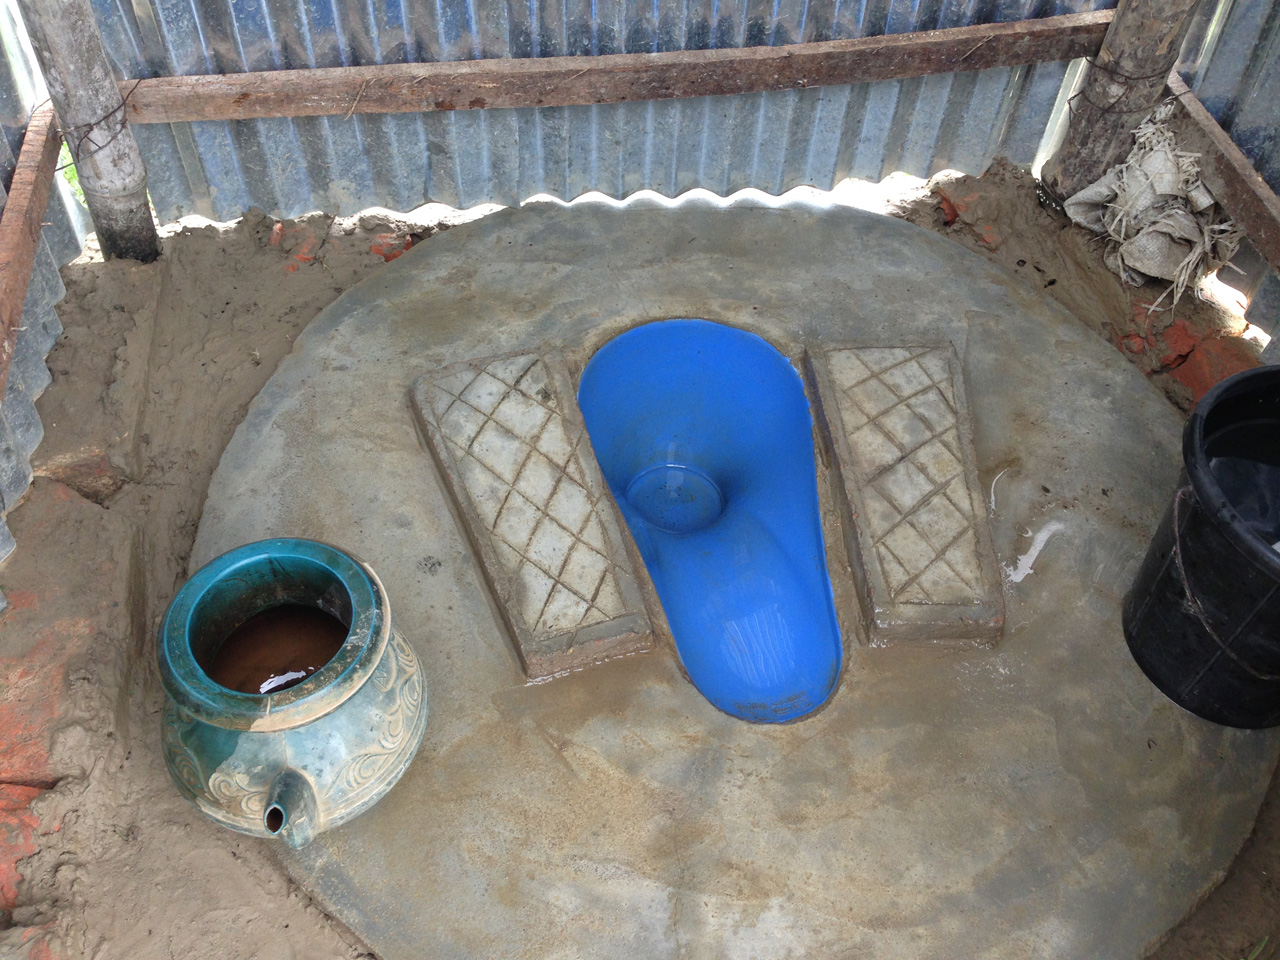 Low Cost Toilets Built To Serve 2 5 Billion People Who